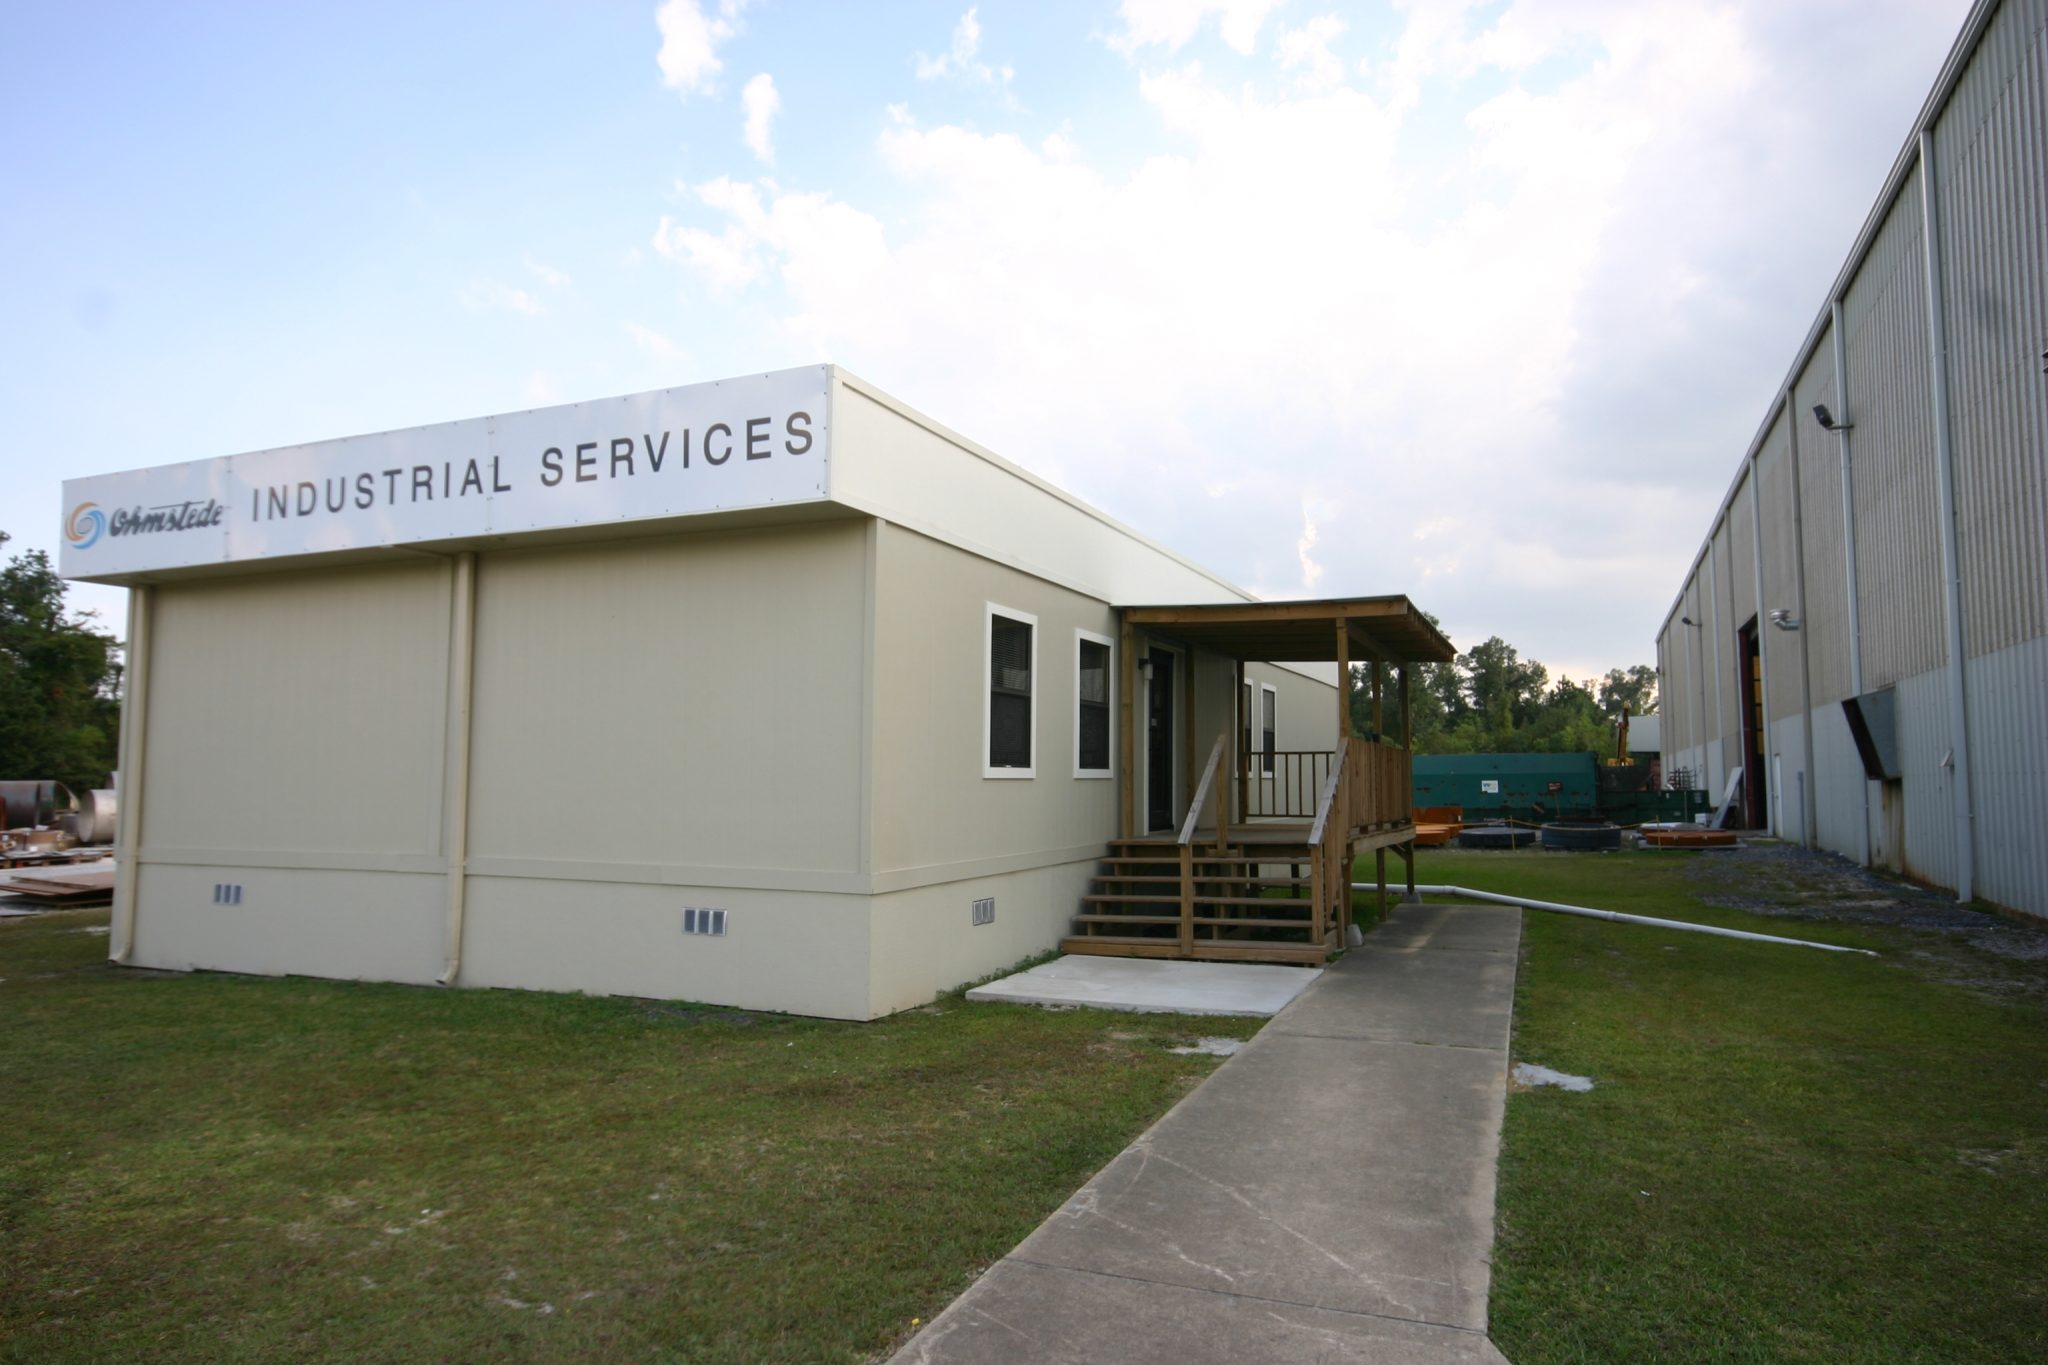 Ohmstede Industrial Services Building- Louisiana